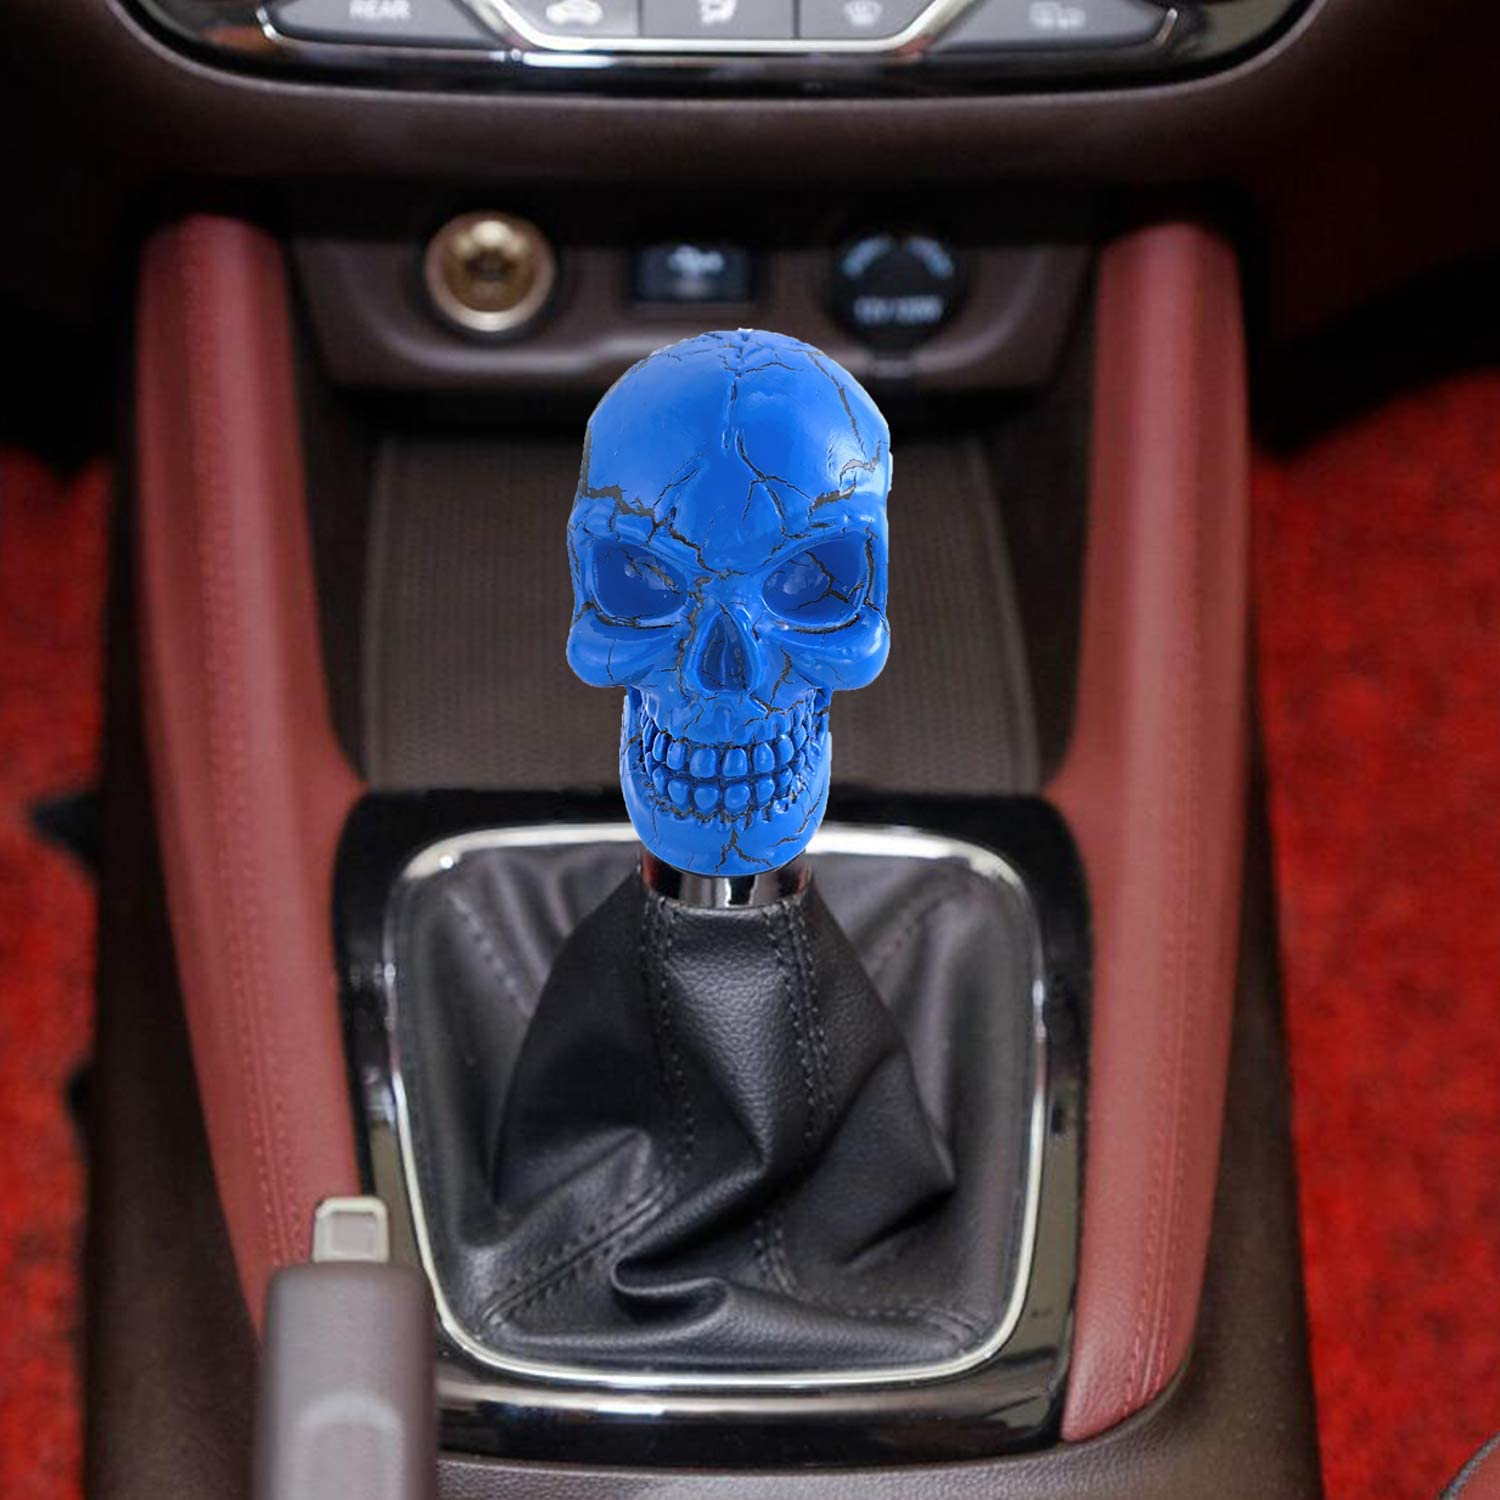 Blue Skull Head Pattern Style Manual Shifter Knobs Shift Lever fit Most Universal Vehicle Arenbel Shift Gear Knob